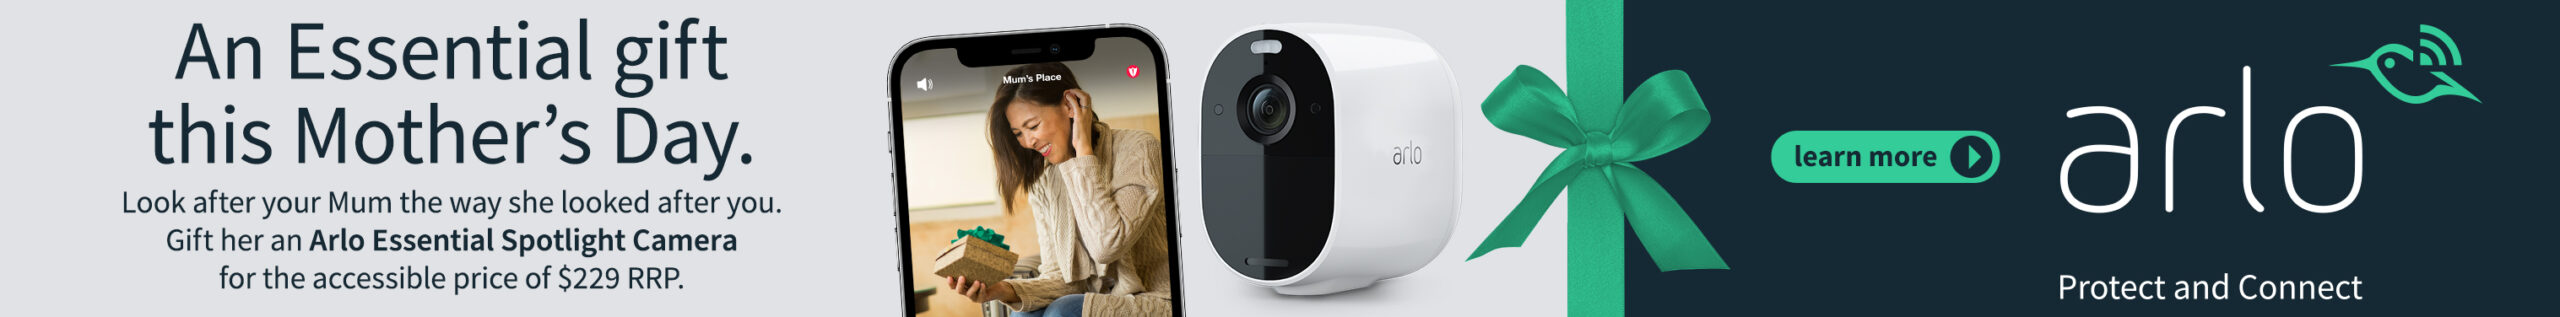 ARL0355 Arlo Essential Spotlight Mothers Day 2021 Banner 728x90 FA scaled LG To Showcase 5G Phone At MWC 2019